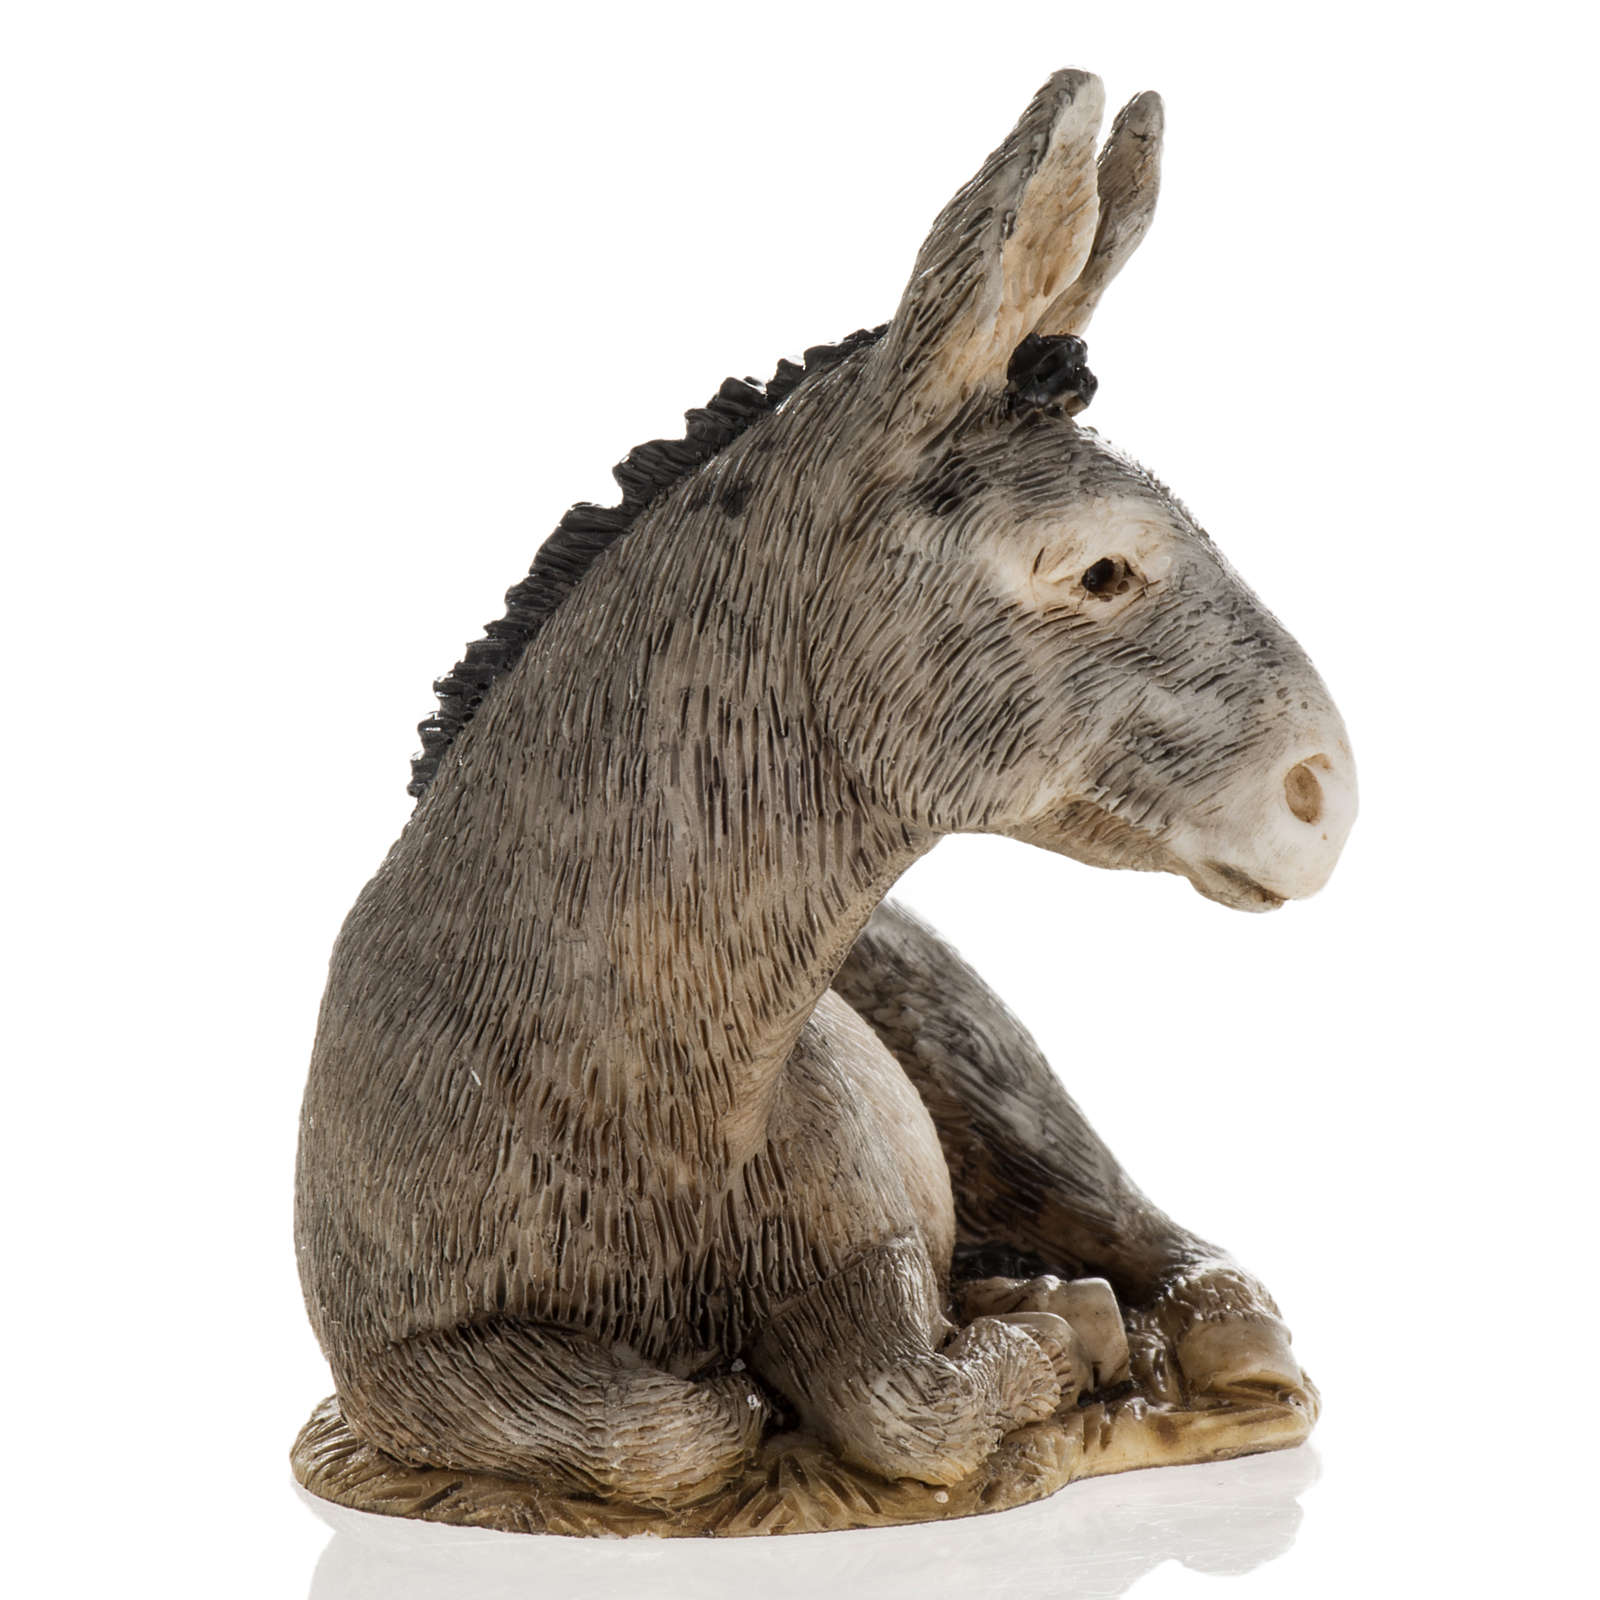 Nativity scene figurine, donkey, 11cm by Landi 3